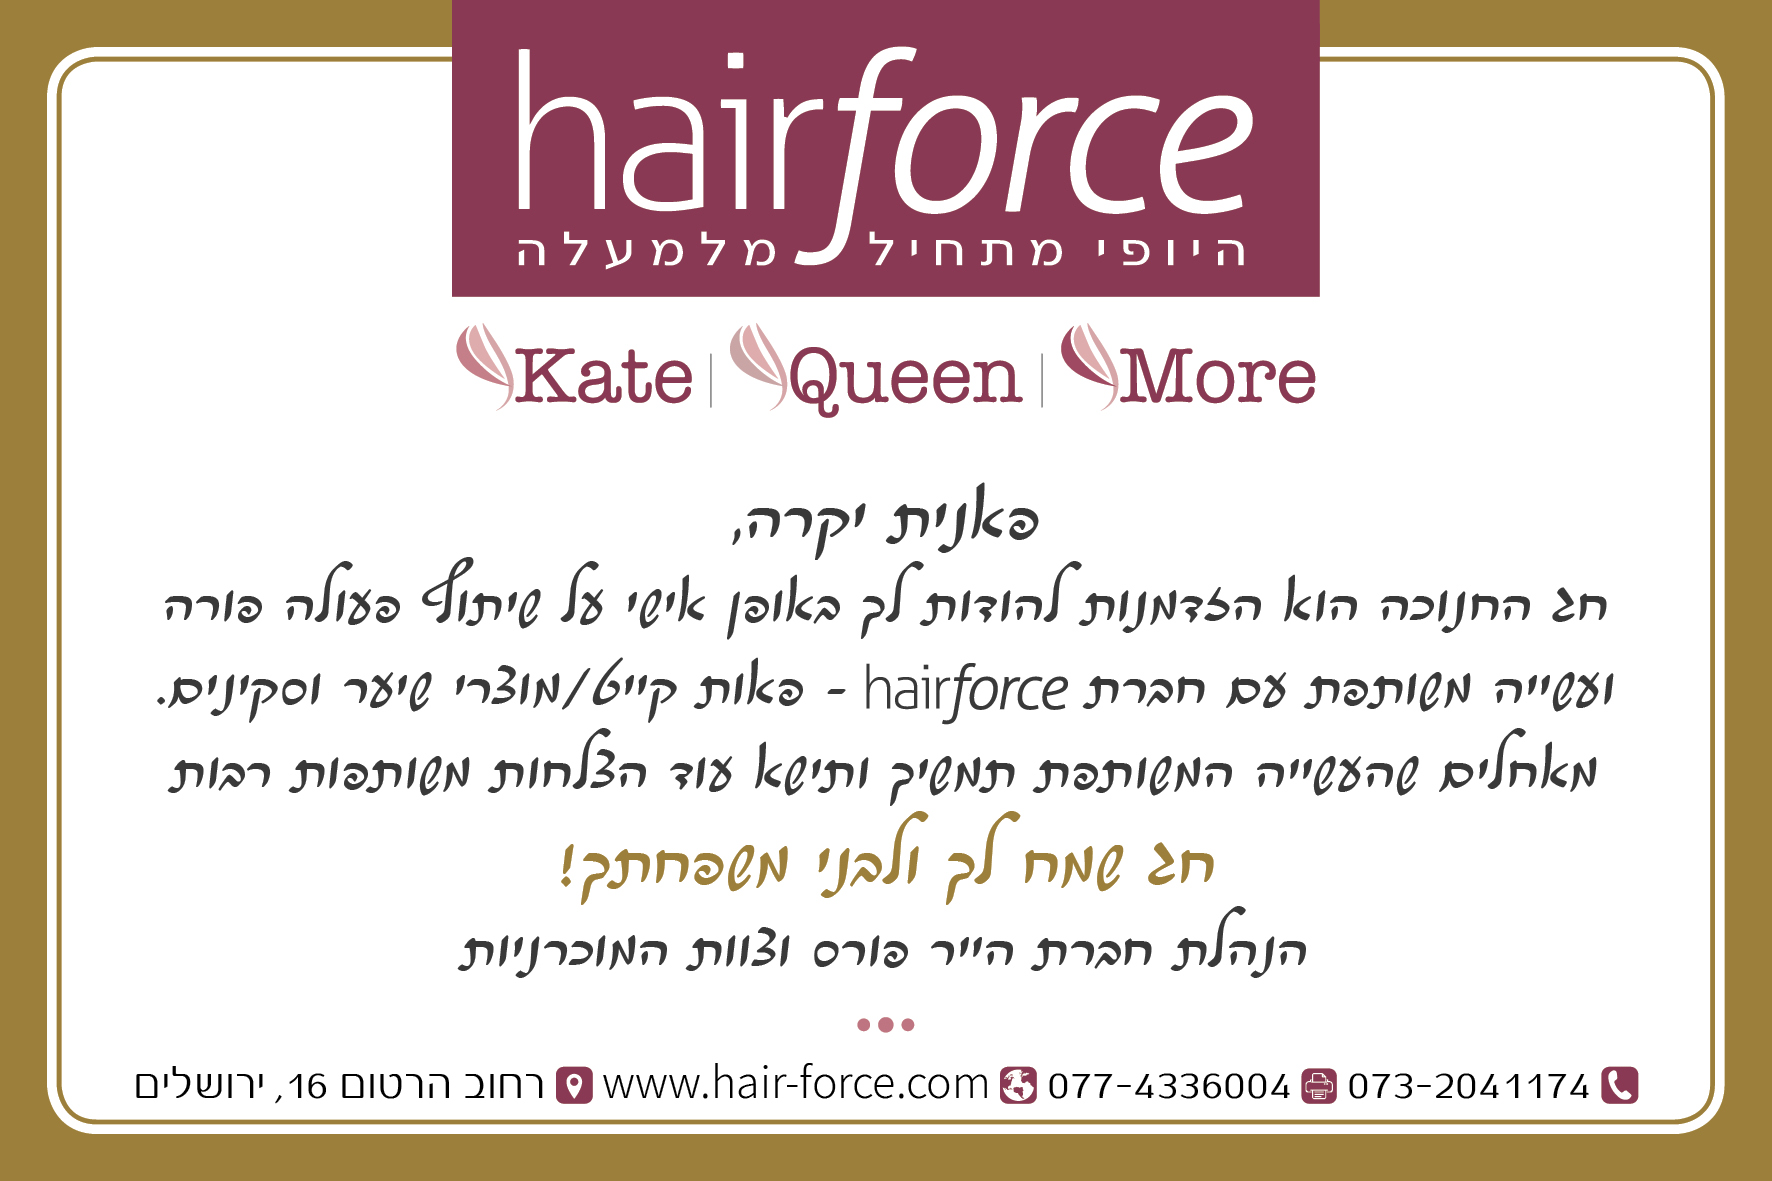 HairForce_GreetingCard_100x150mm